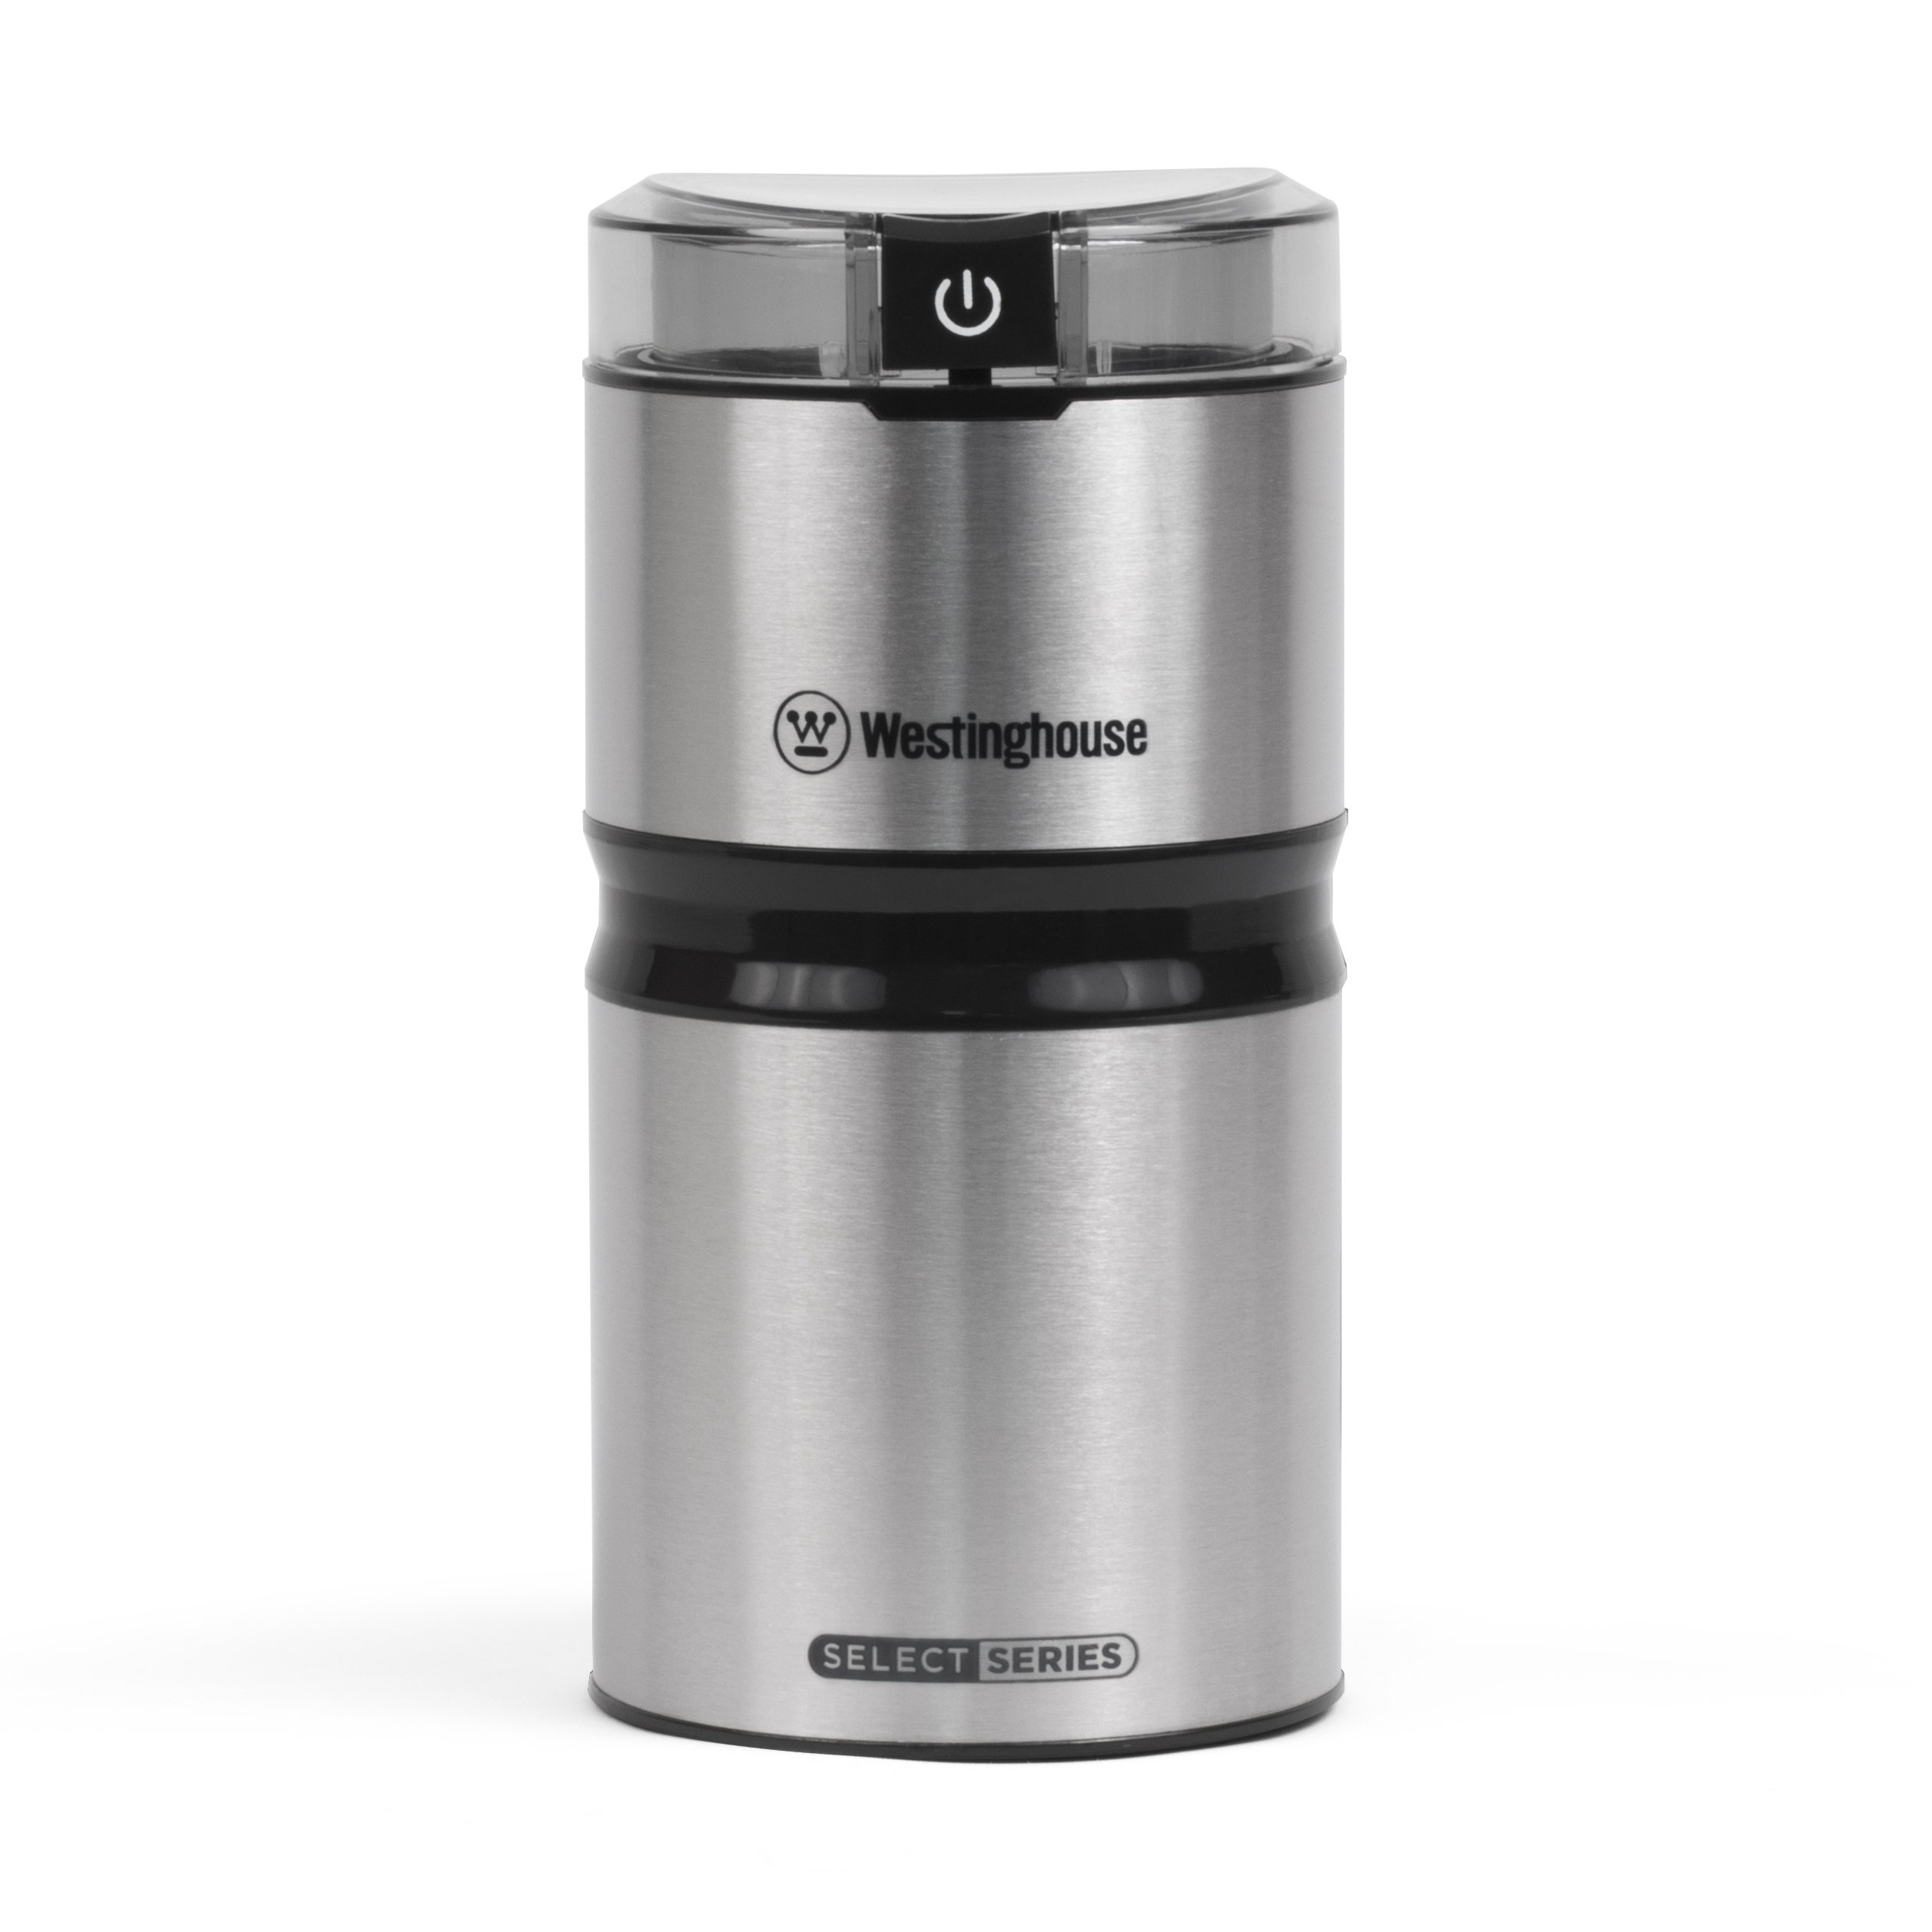 Westinghouse WCG21SSA Select Series Stainless Steel Electric Coffee and Spice Grinder - Amazon Exclusive by Westinghouse